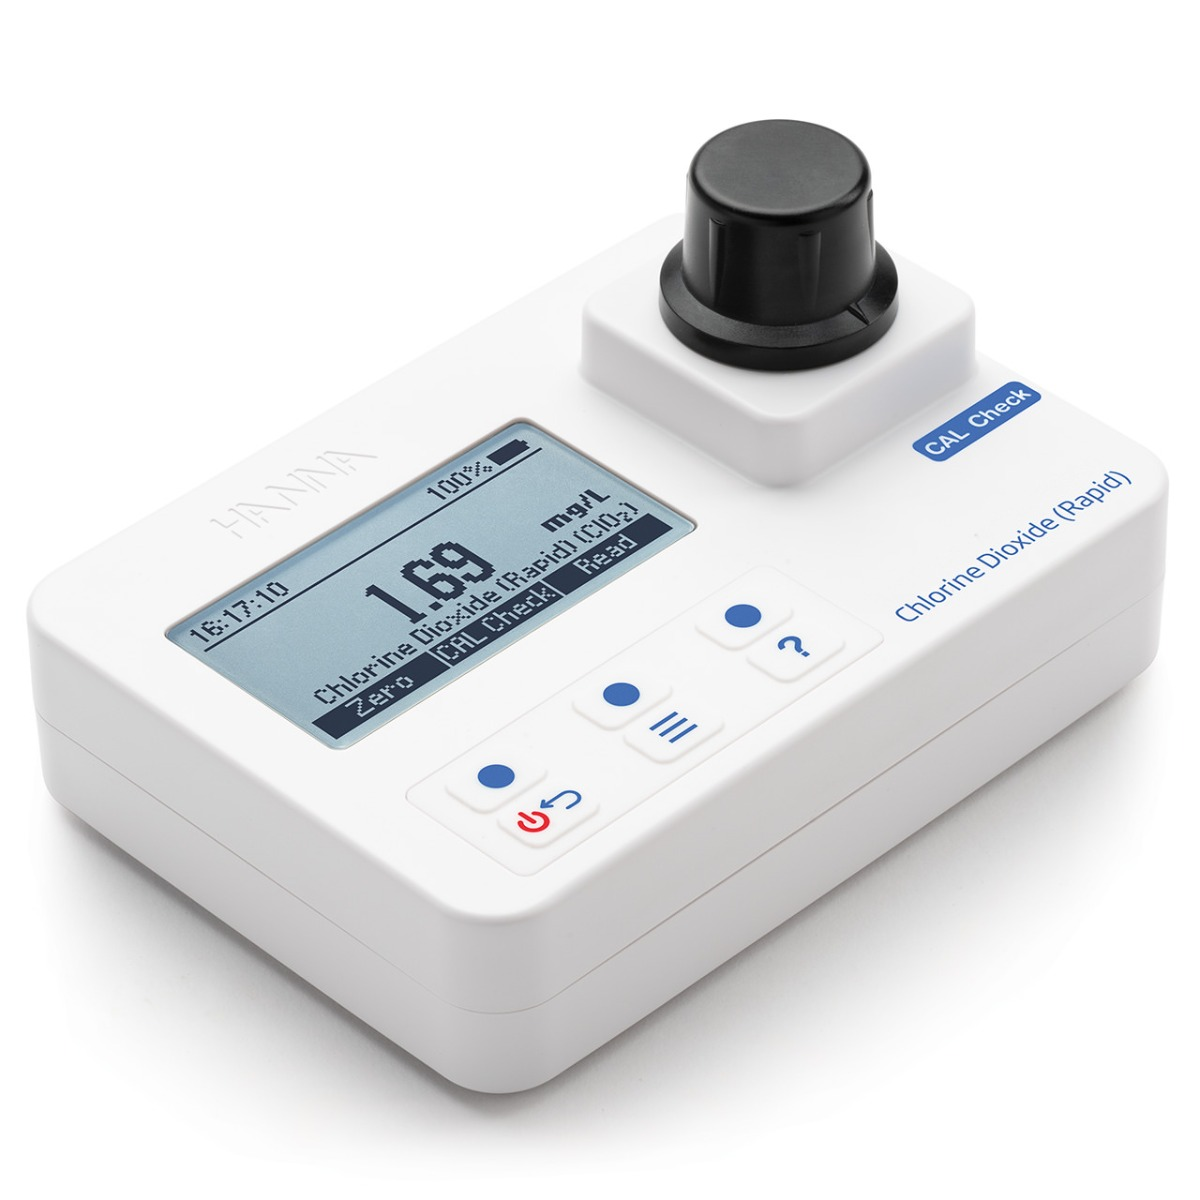 Chlorine Dioxide (Rapid) Photometer with CAL Check – HI97779